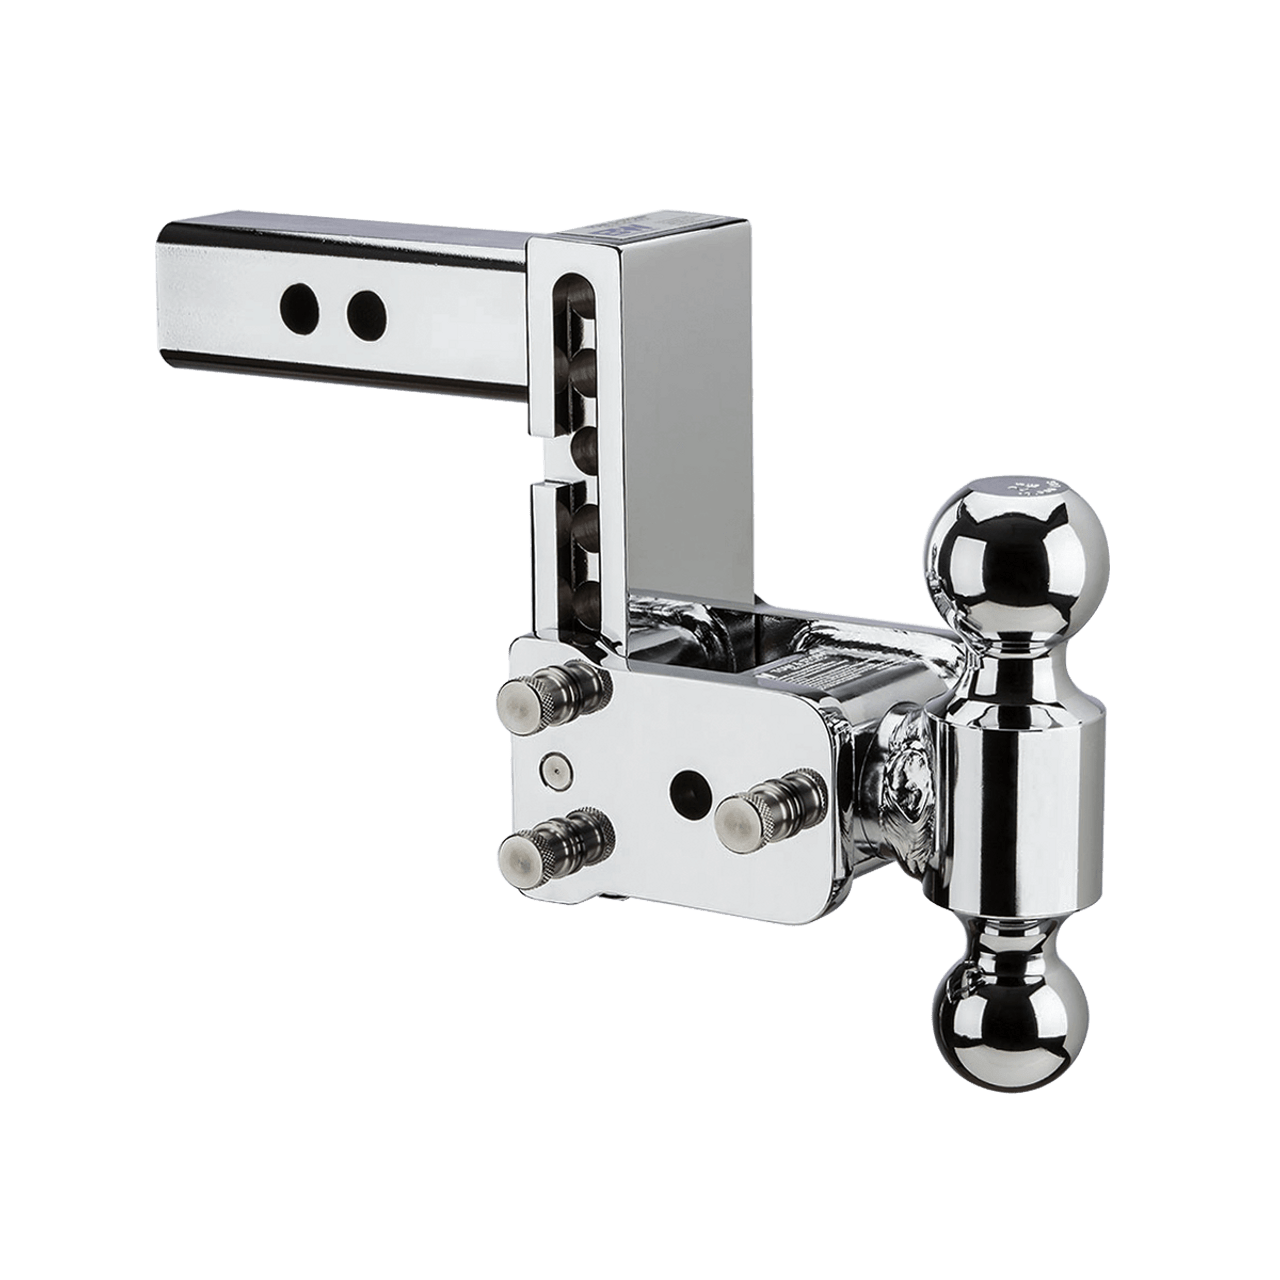 """MAGNUM-CHR8 --- B&W 2"""" Shank Tow and Stow Chrome Adjustable Two Ball Mount, 5"""" Maximum Drop"""